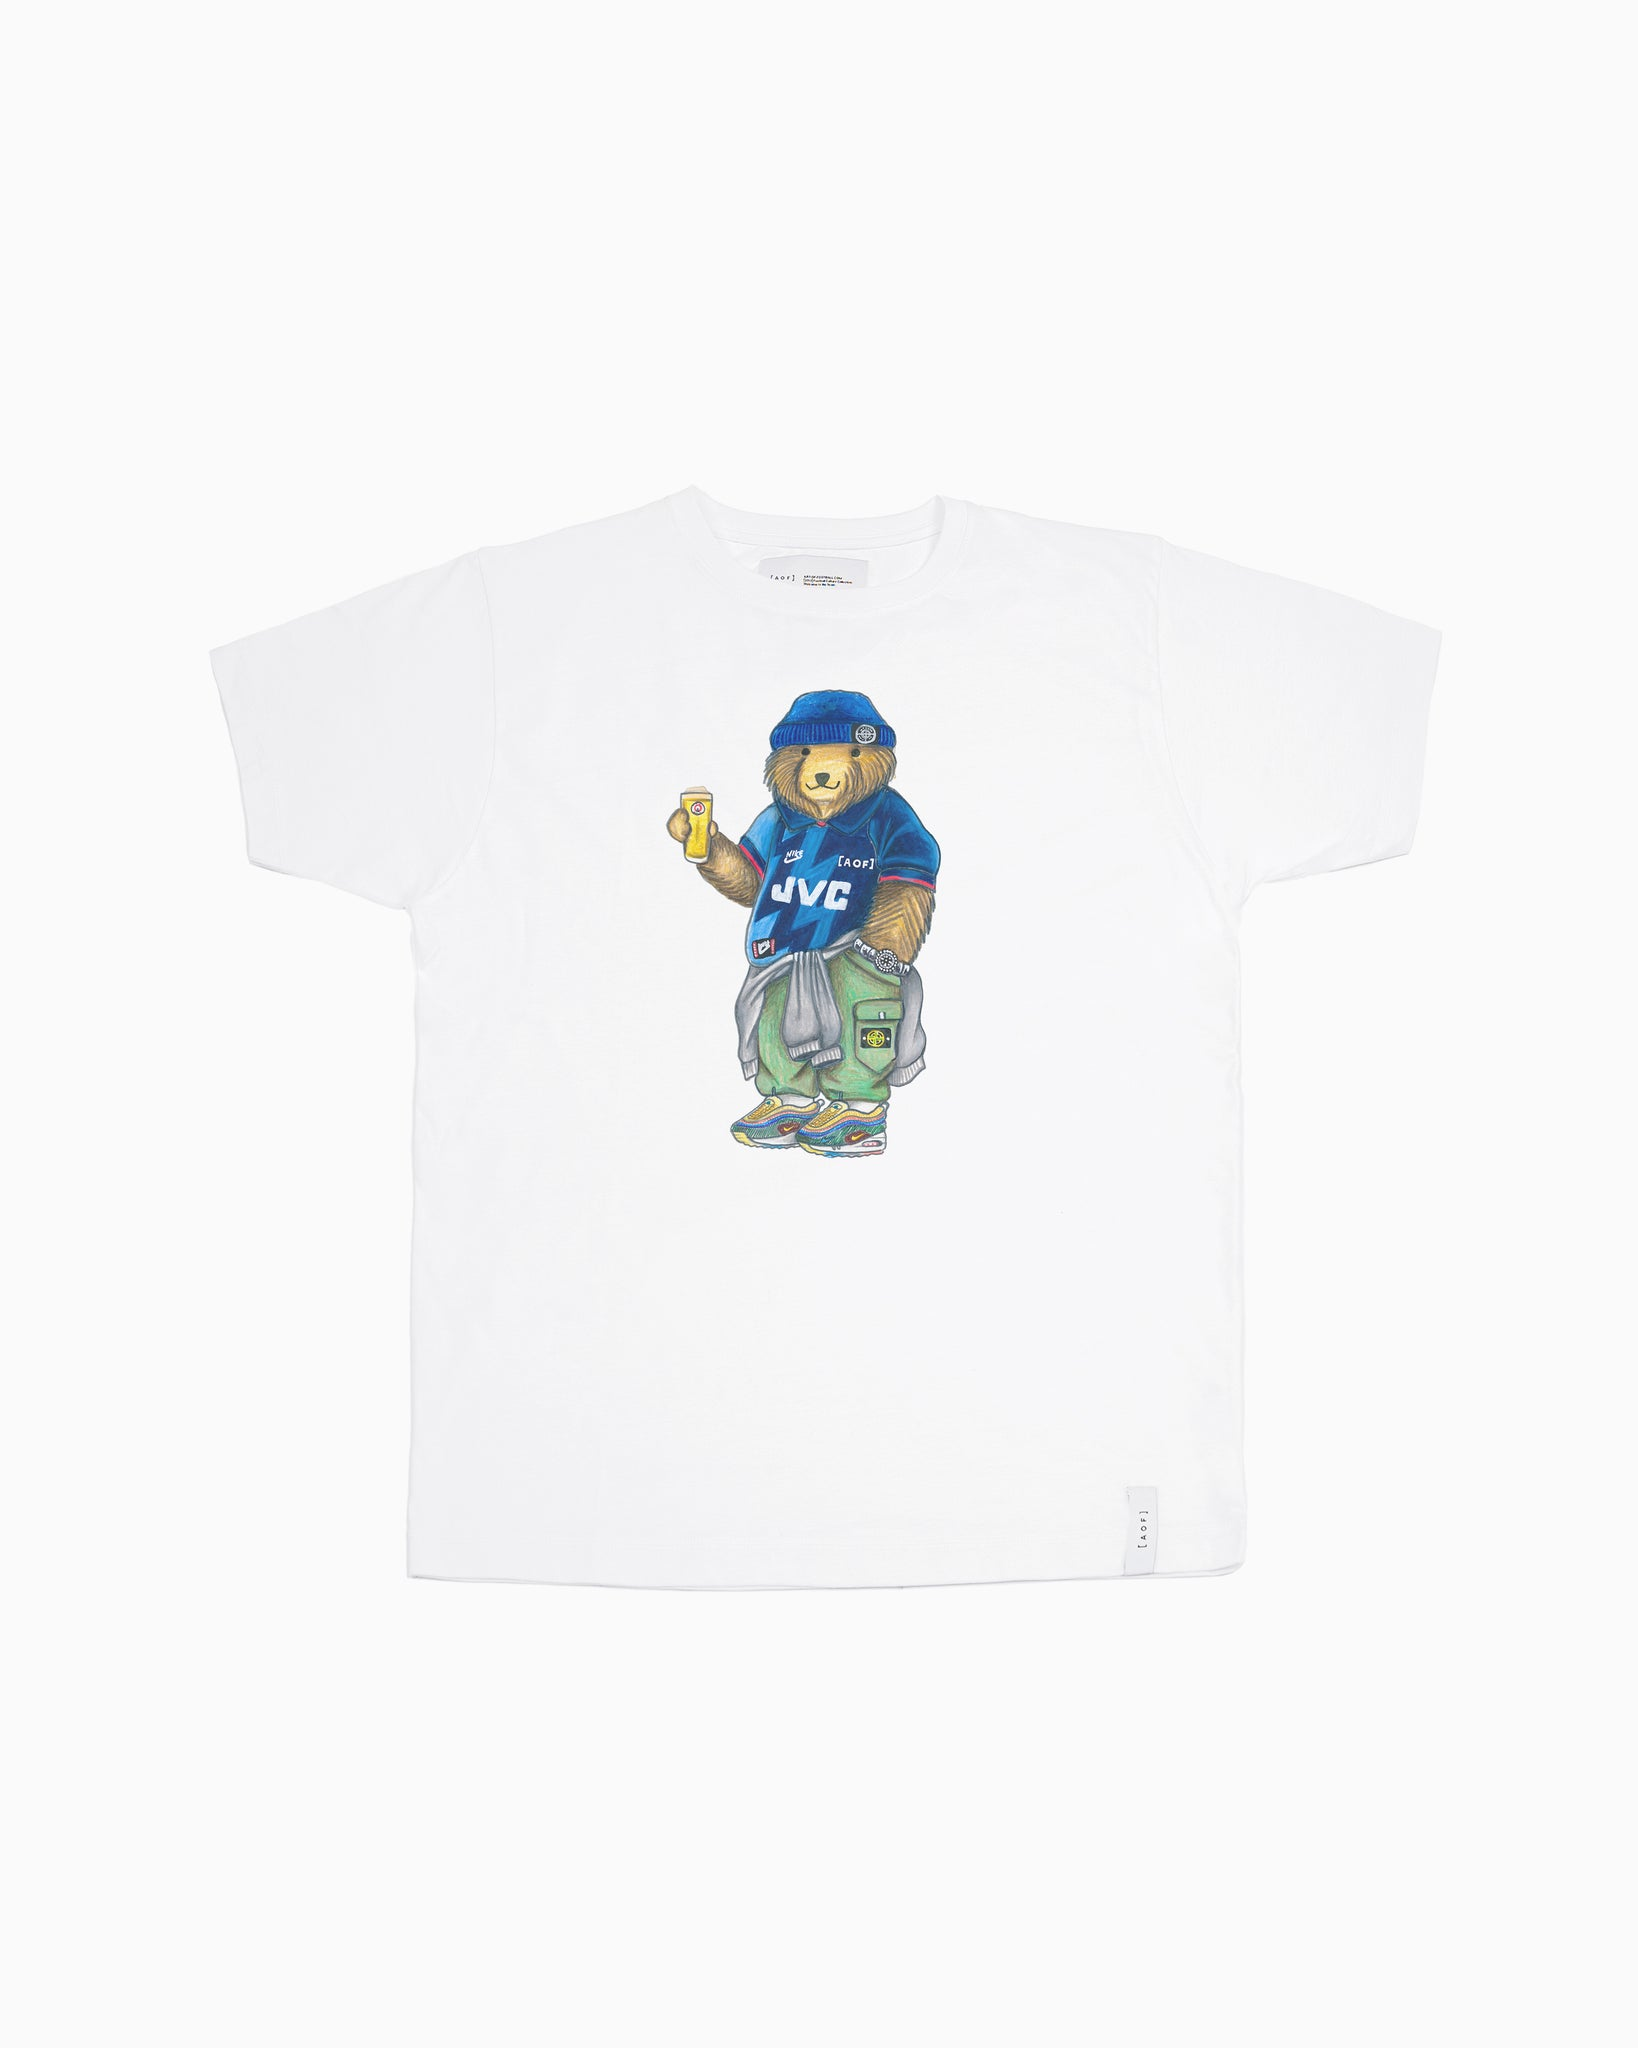 95 Away Pickles - Tee or Sweat